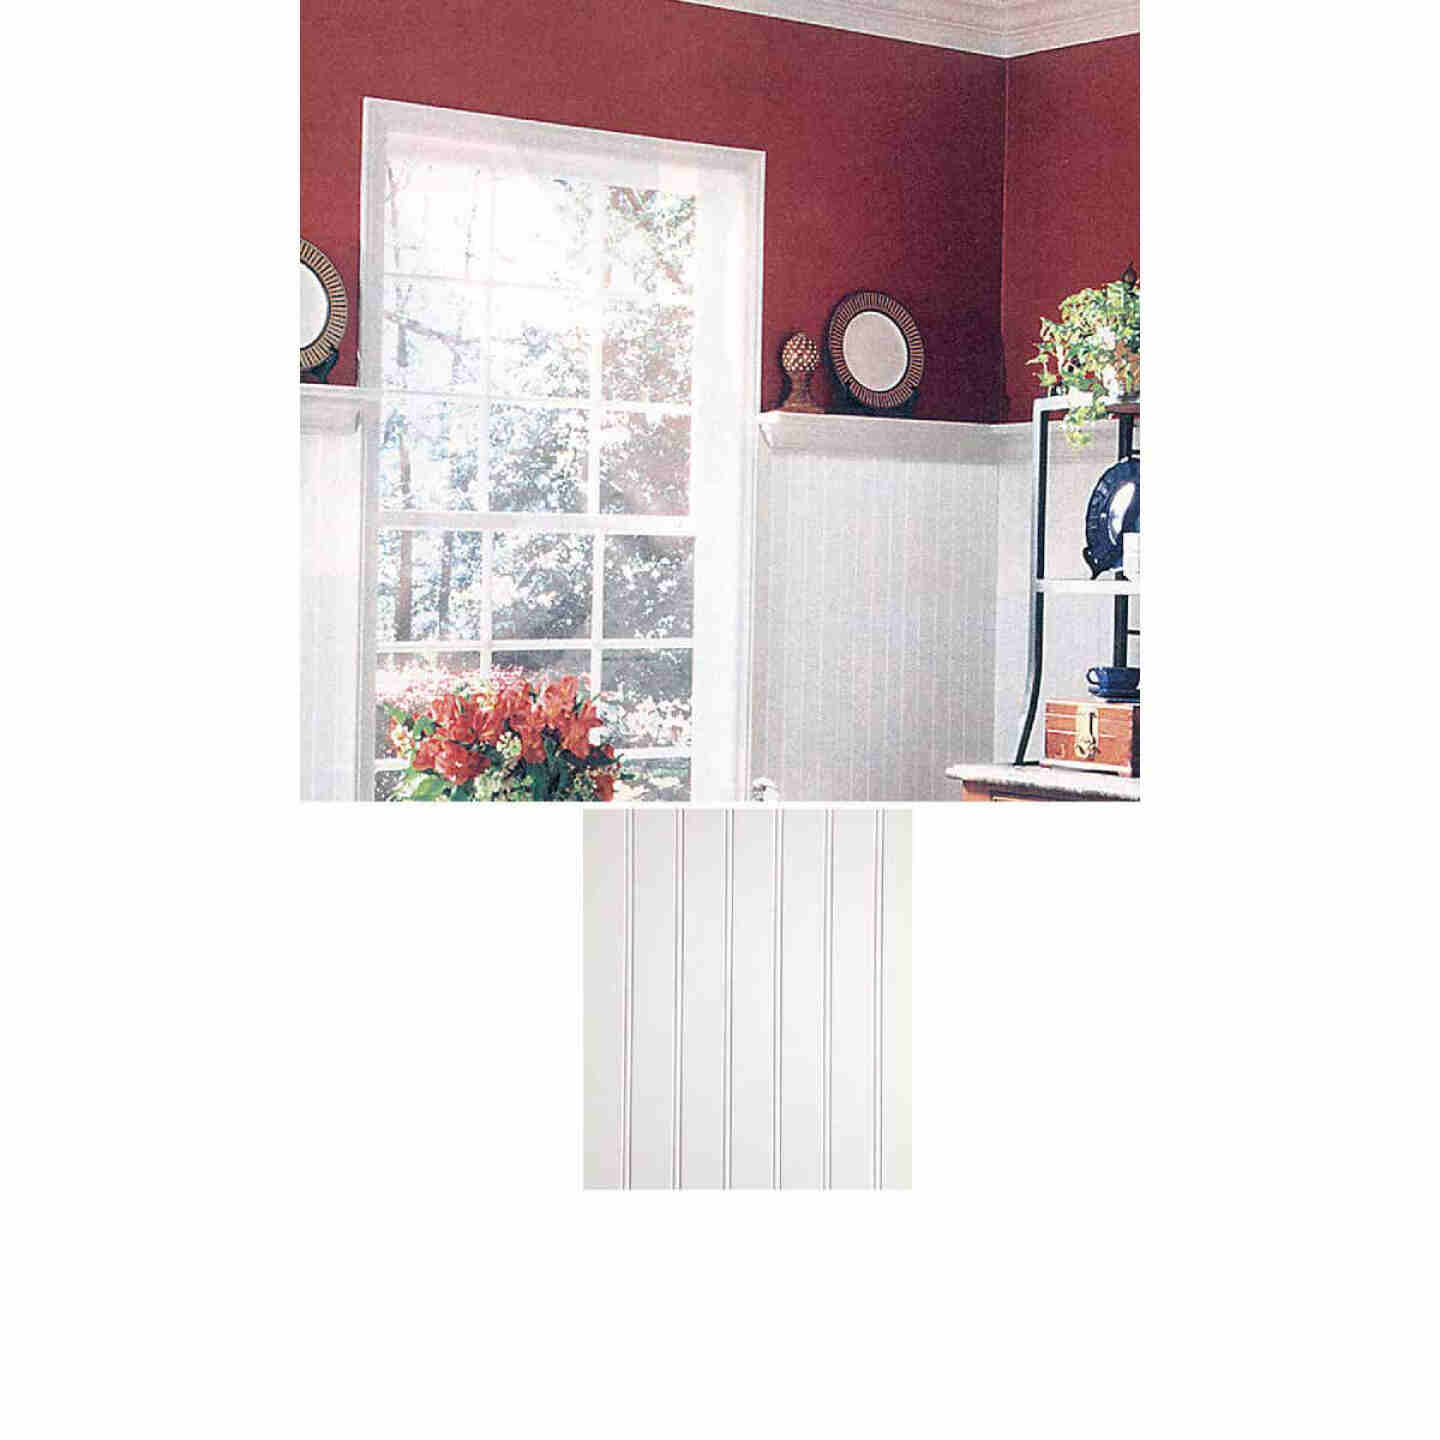 DPI 4 Ft. x 8 Ft. x 3/16 In. Paintable White Beaded Wall Paneling Image 1